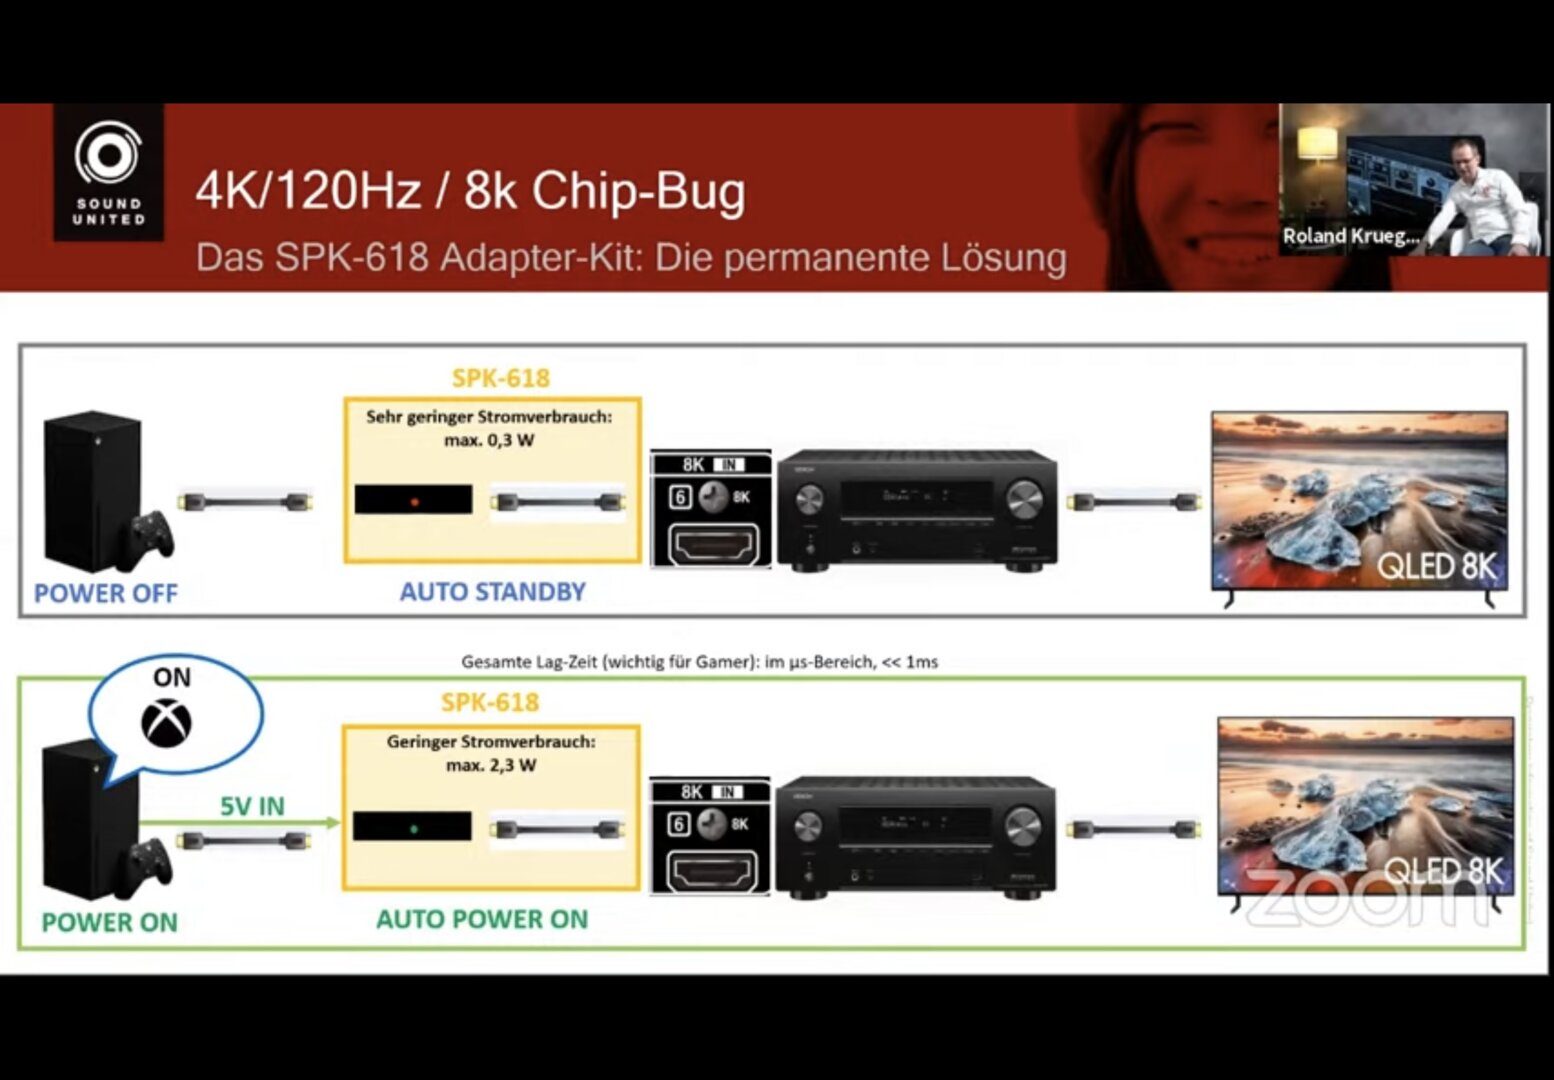 SPK618 power consumption and latency